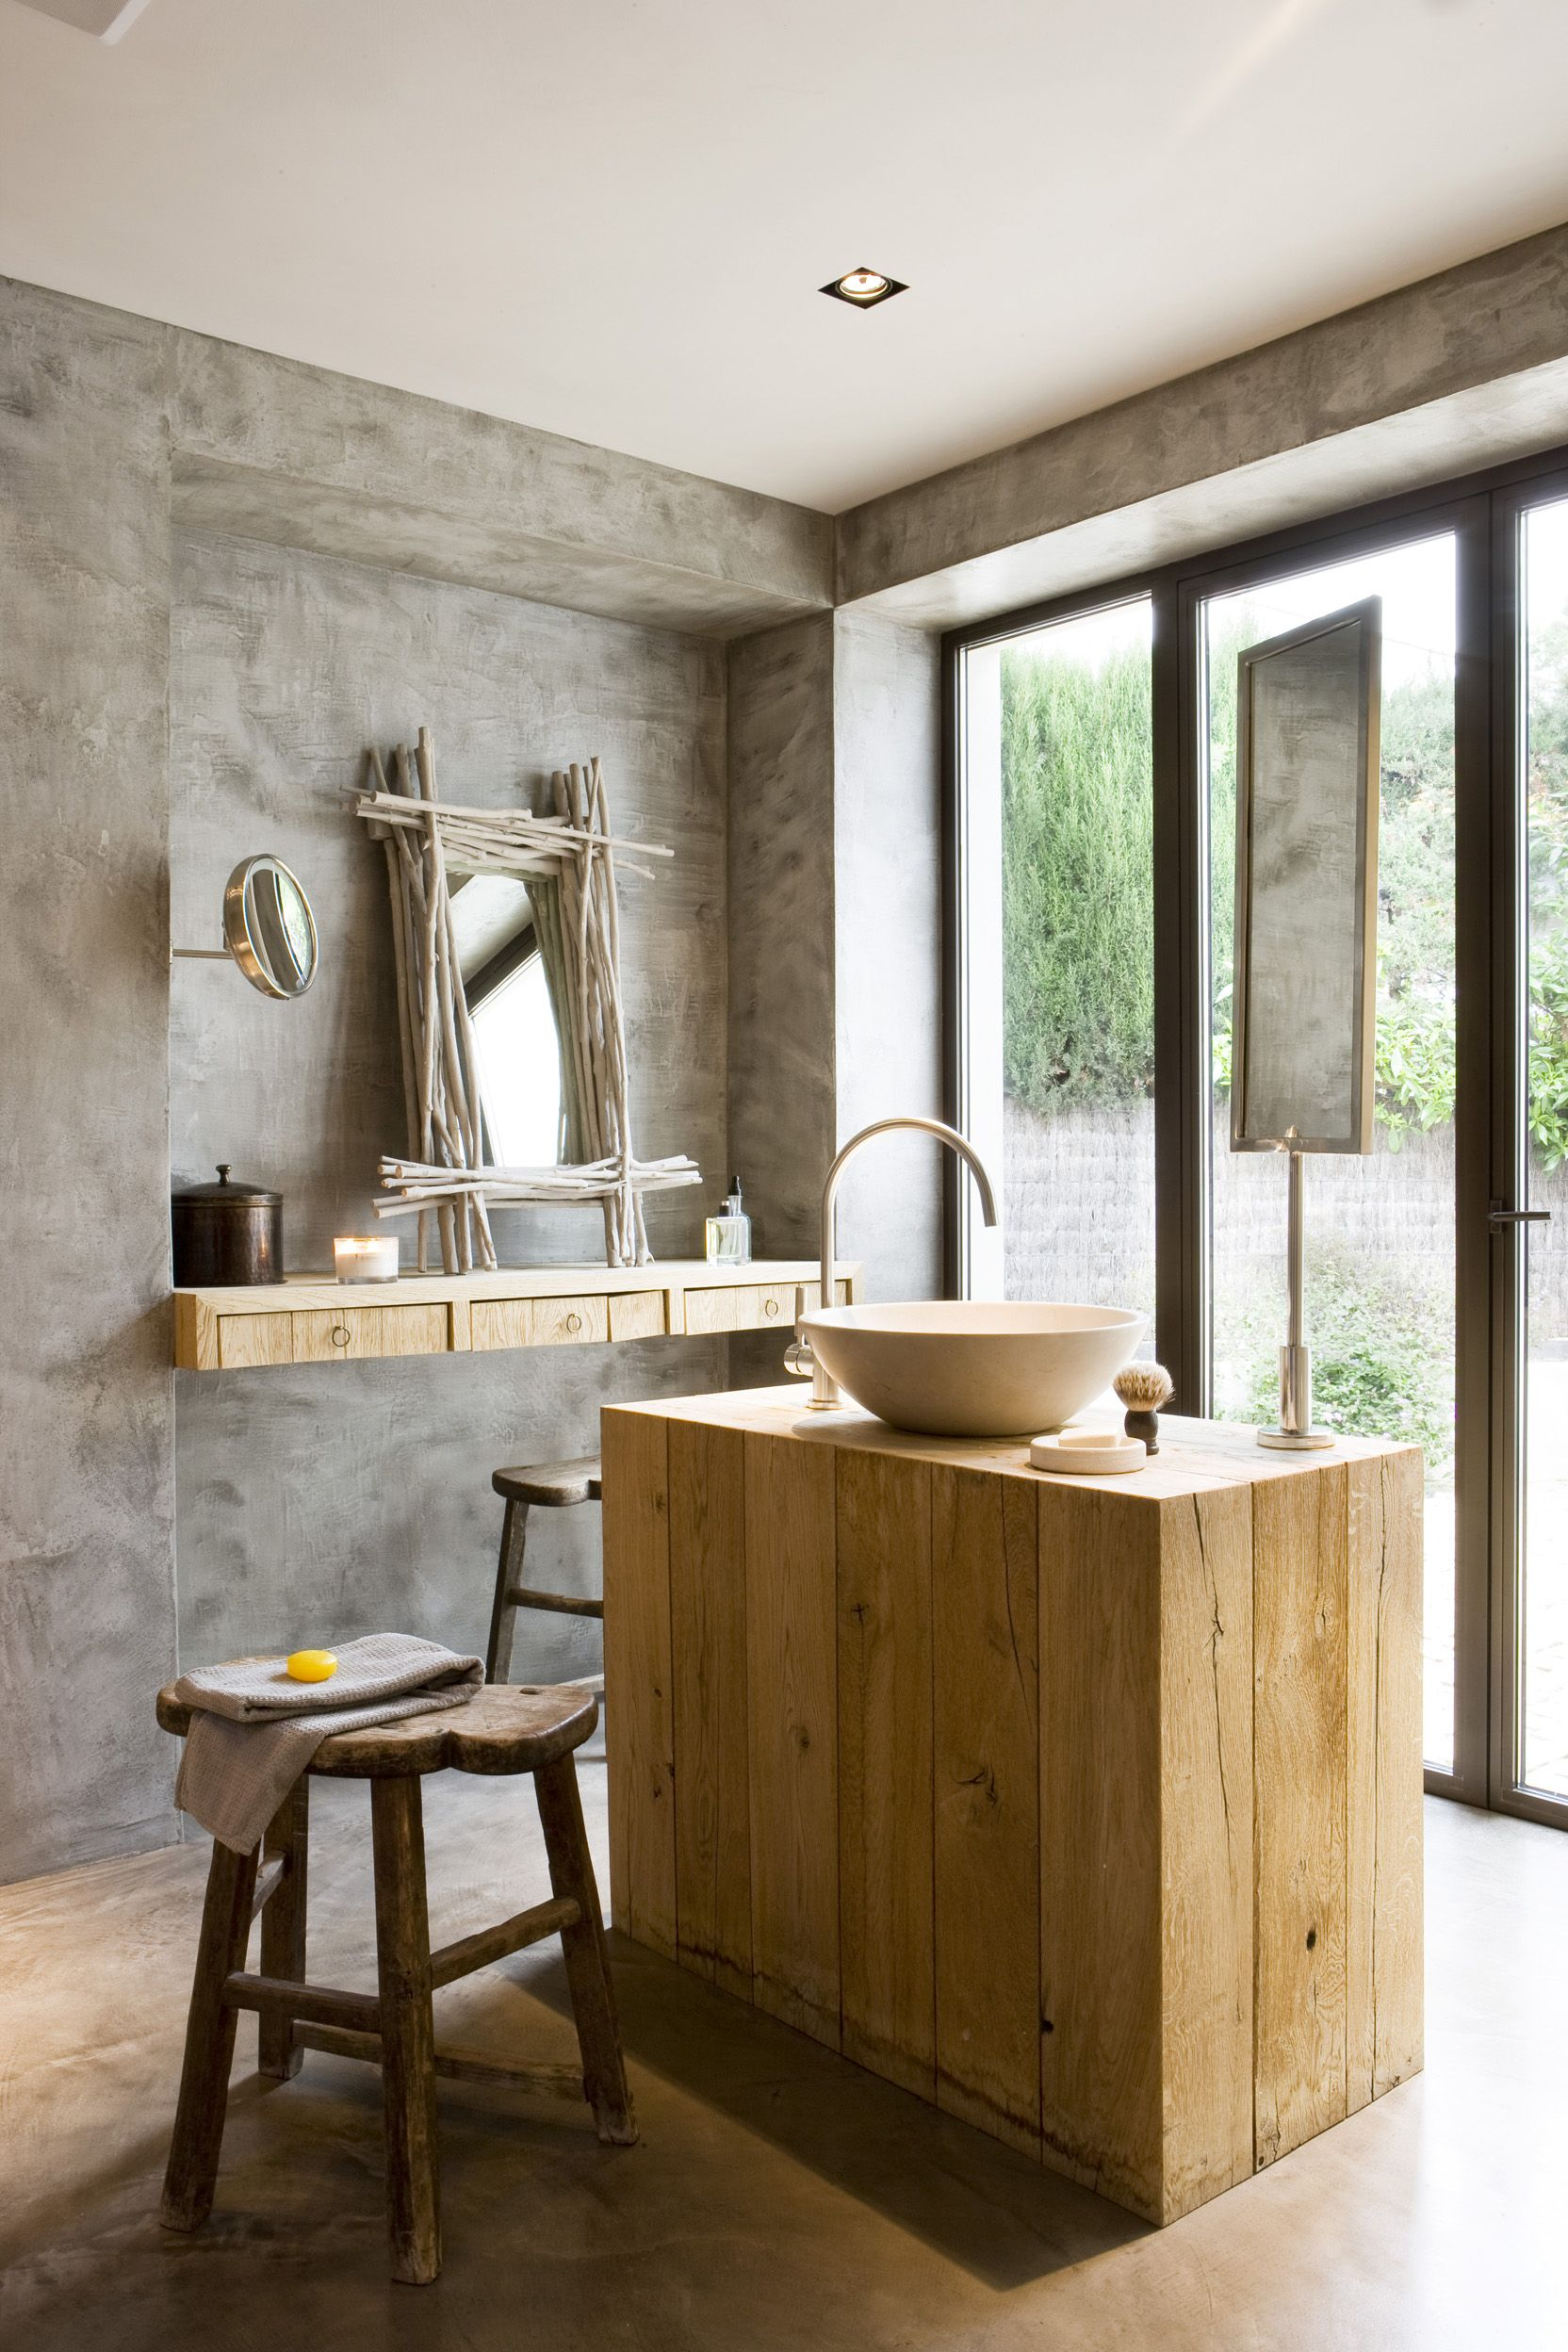 Check Out Cool Rustic Bathroom Design Ideas Rustic Style Combines